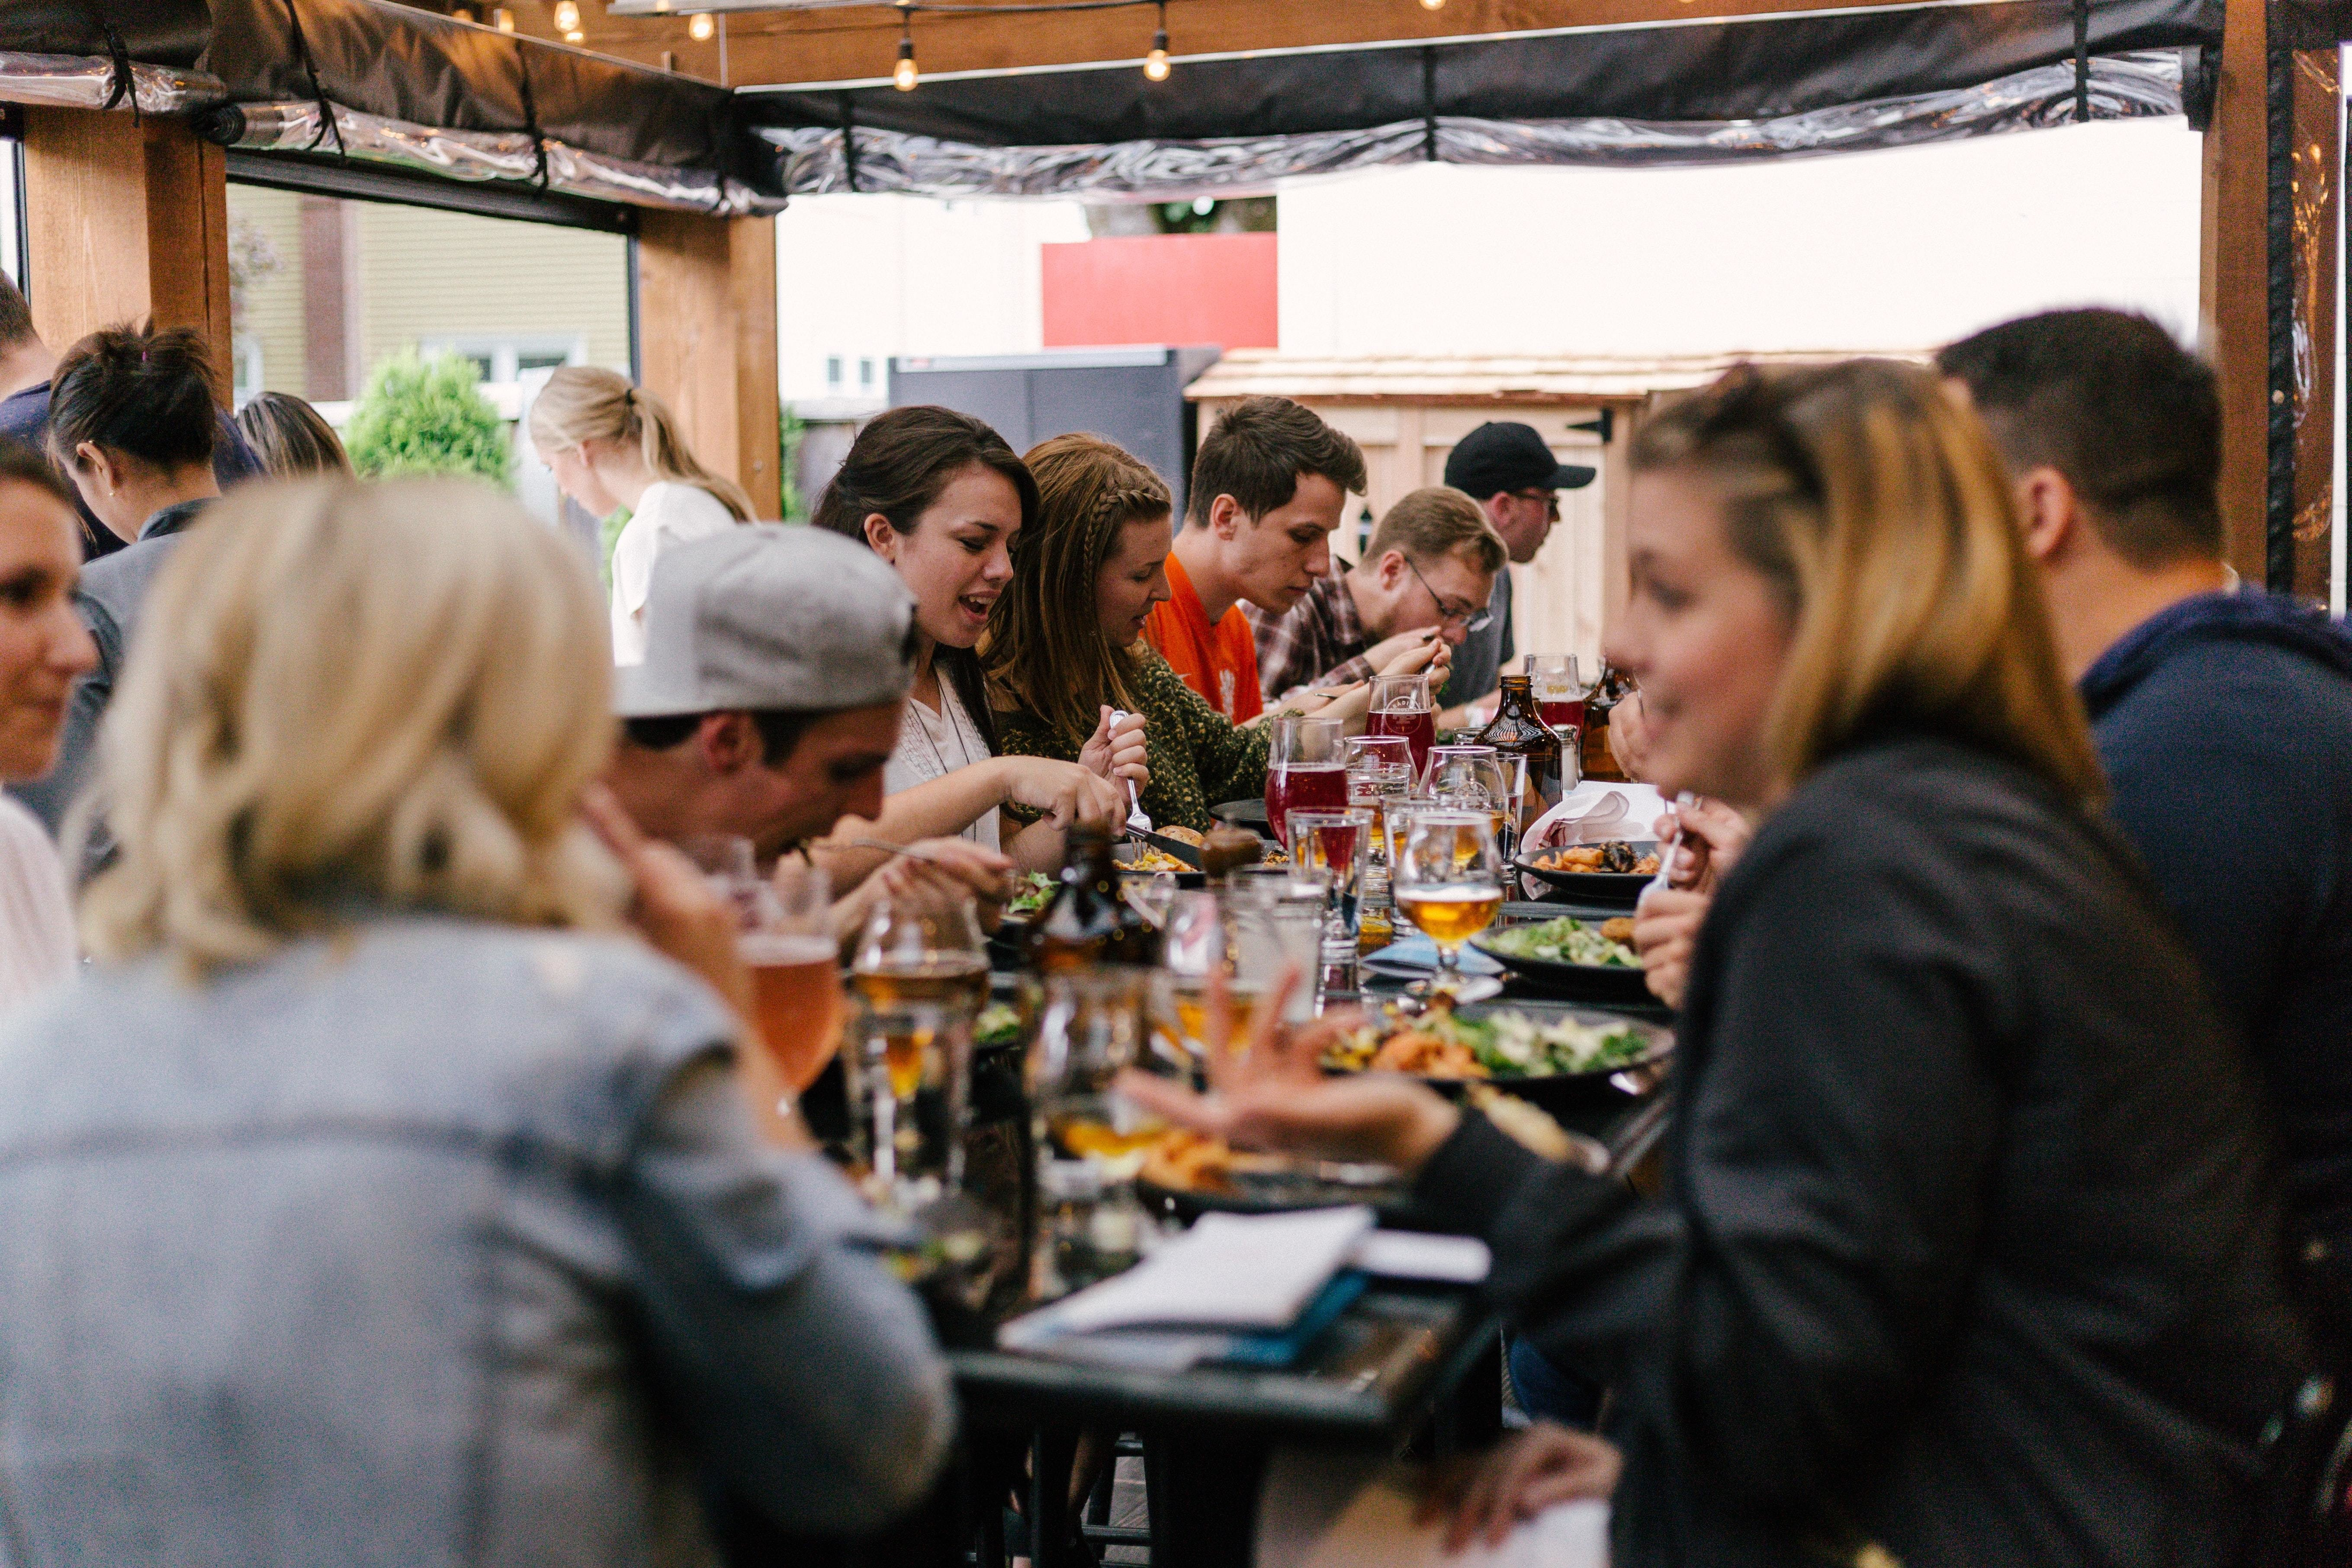 Americans are increasingly reporting a return to more normal activities, such as this social gathering over a meal